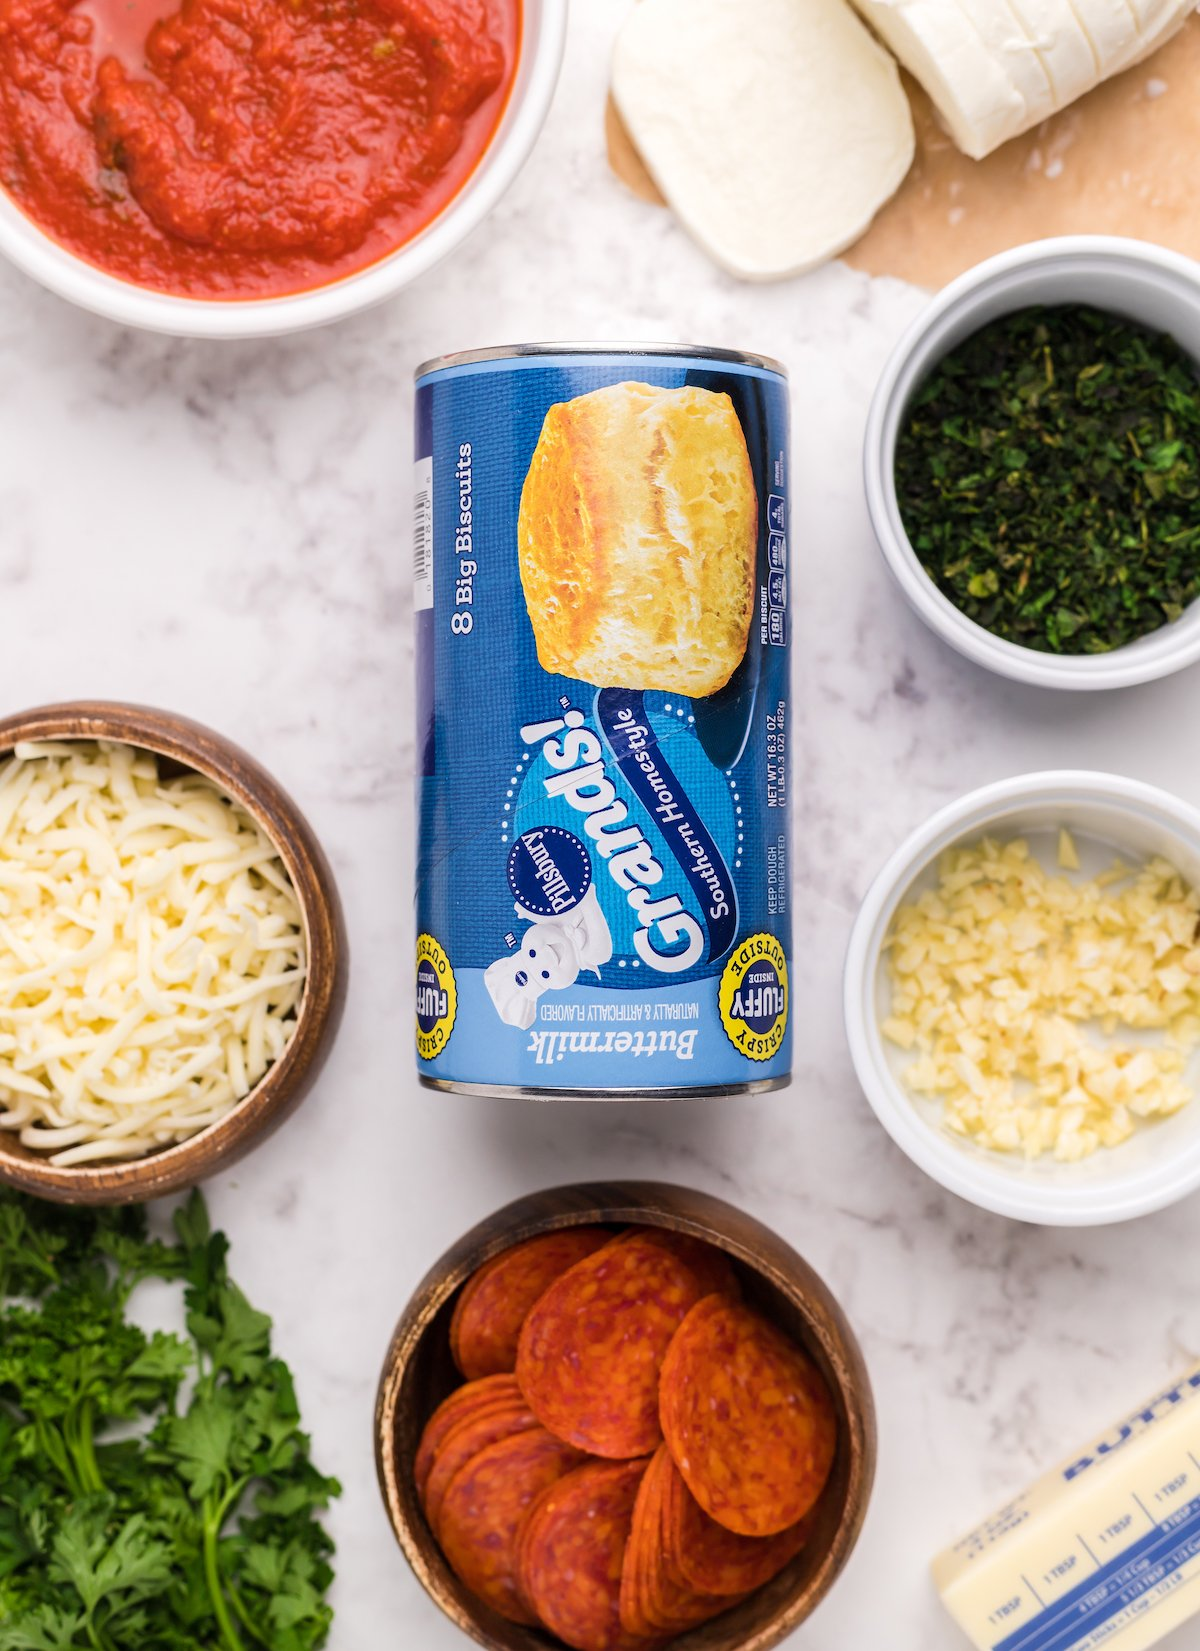 Overhead look at the ingredients to make biscuit pizza casserole: canned Grands! Biscuits, shredded mozzarella, fresh mozzarella, pepperonis, butter, minced garlic, and parsley.